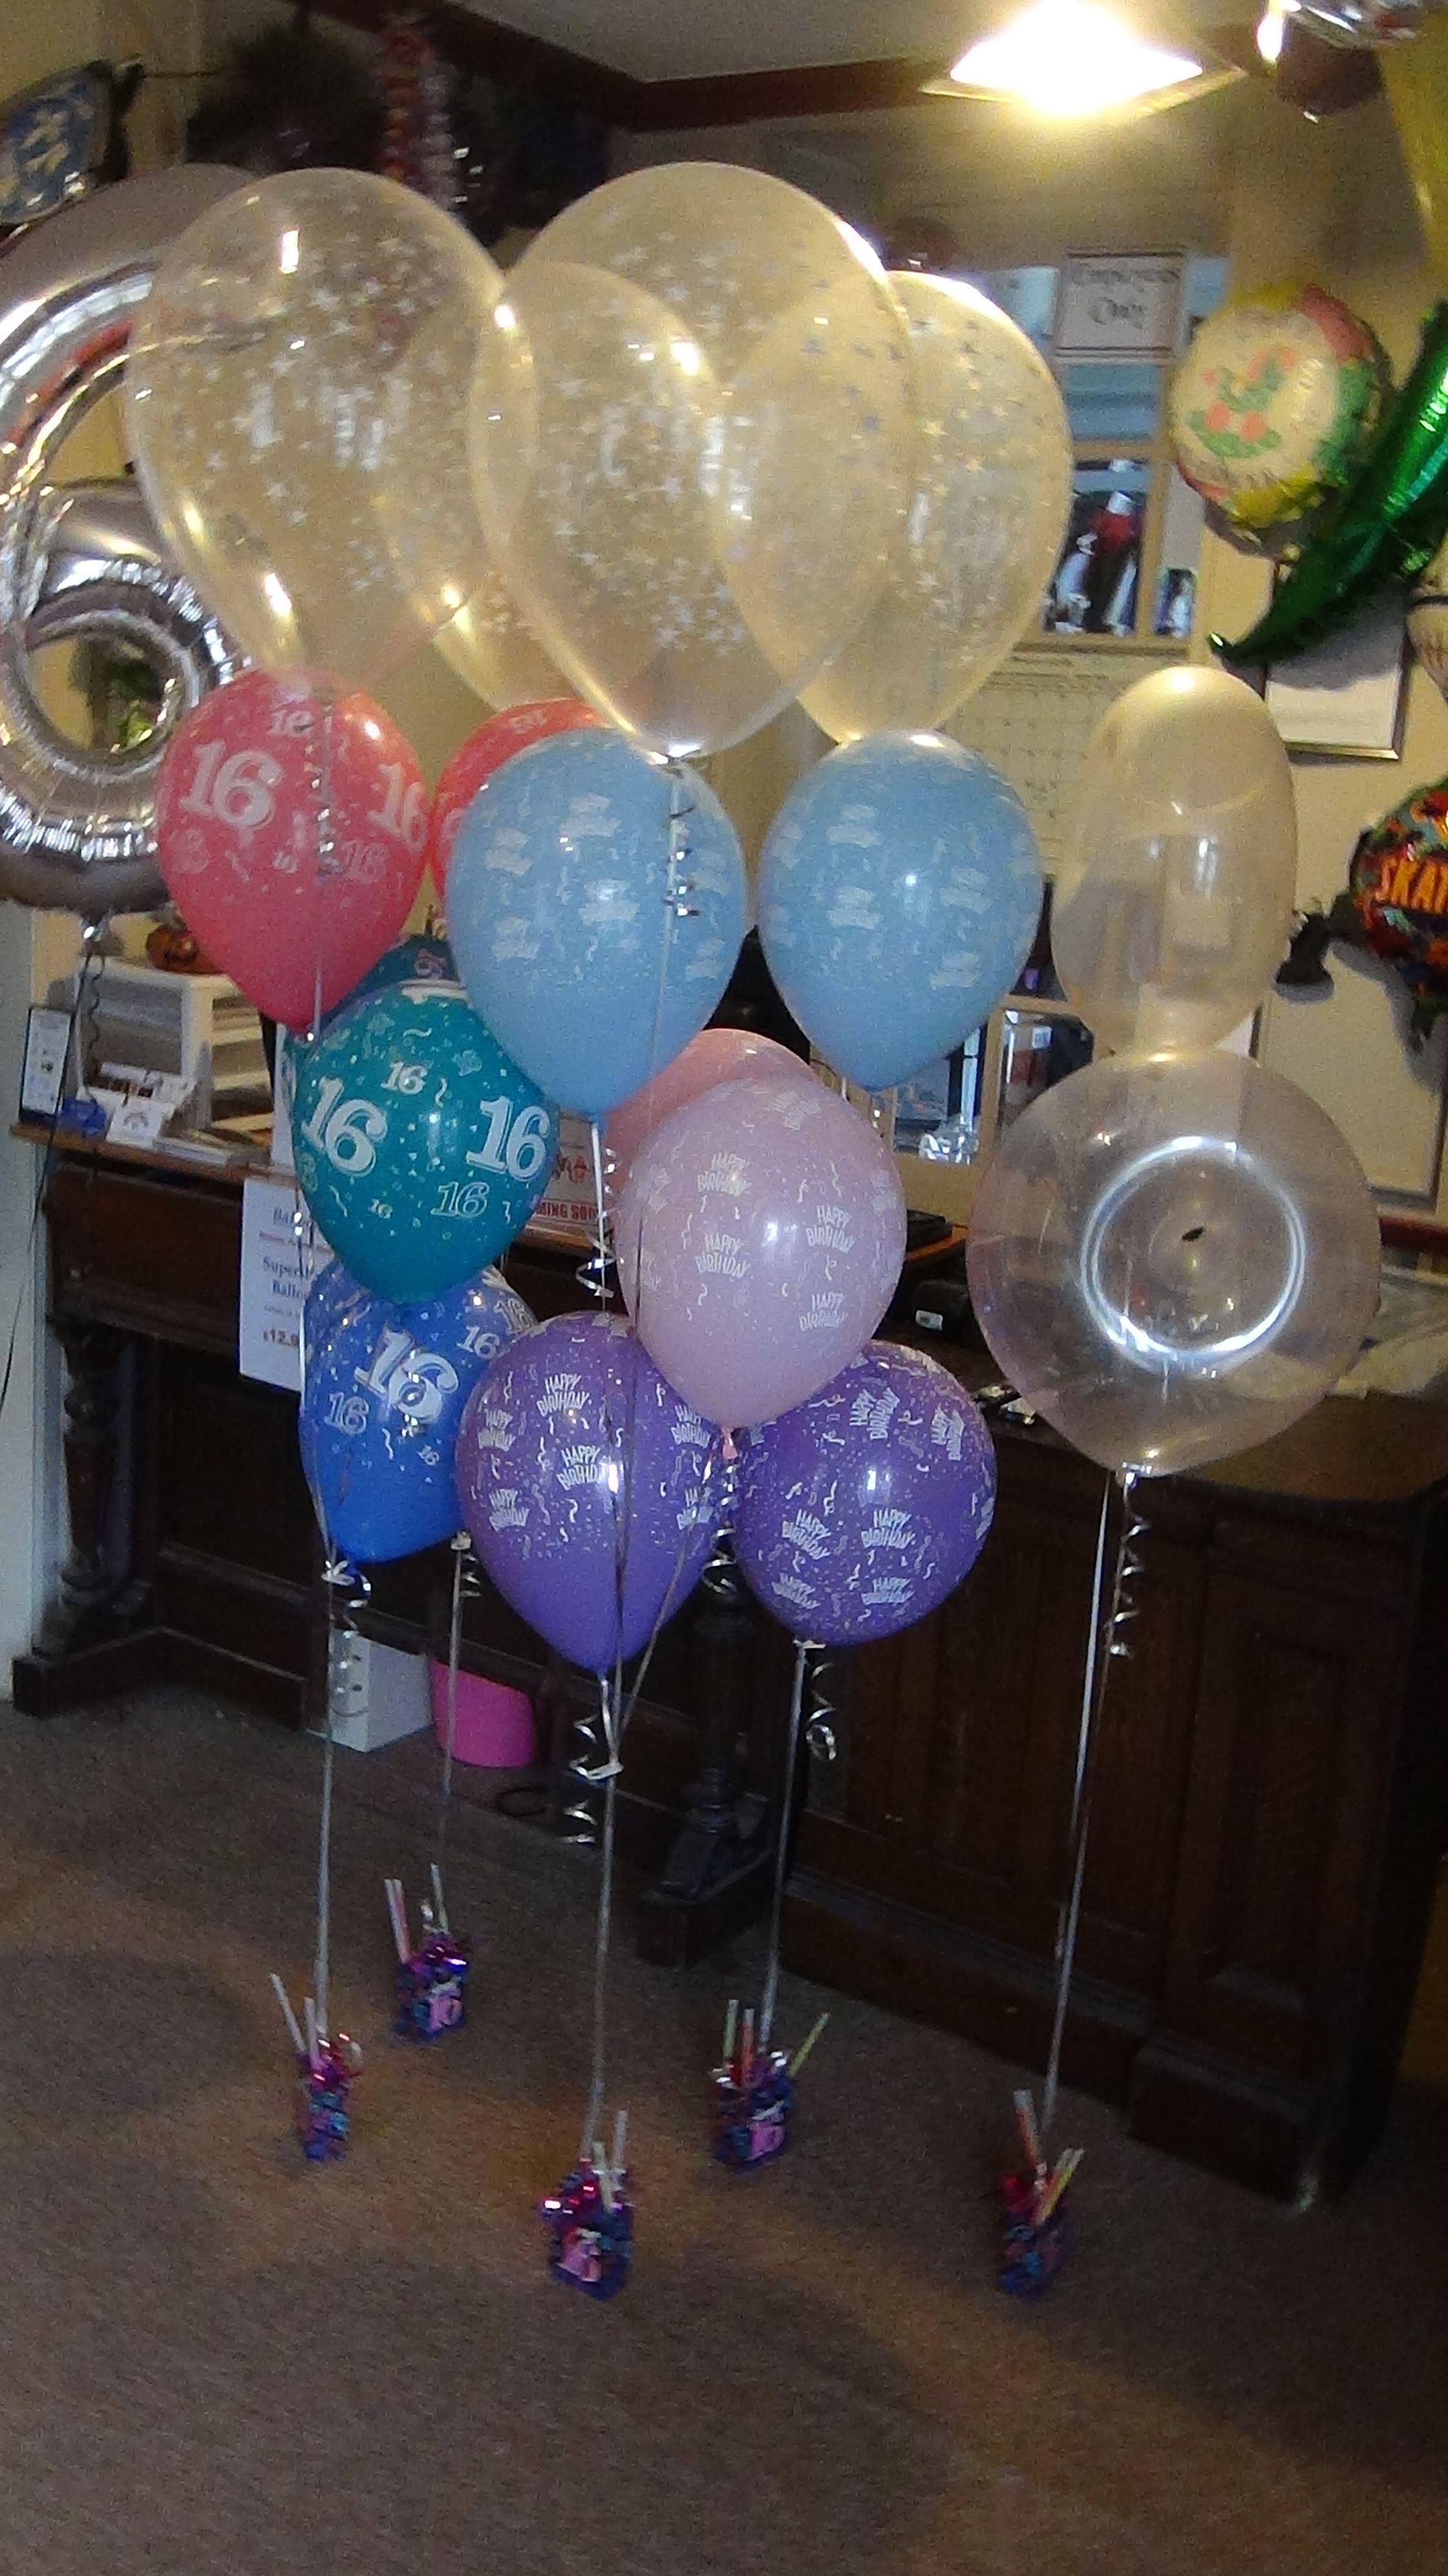 These Were Balloons Going Out To A Sweet 16 Always An Important Age